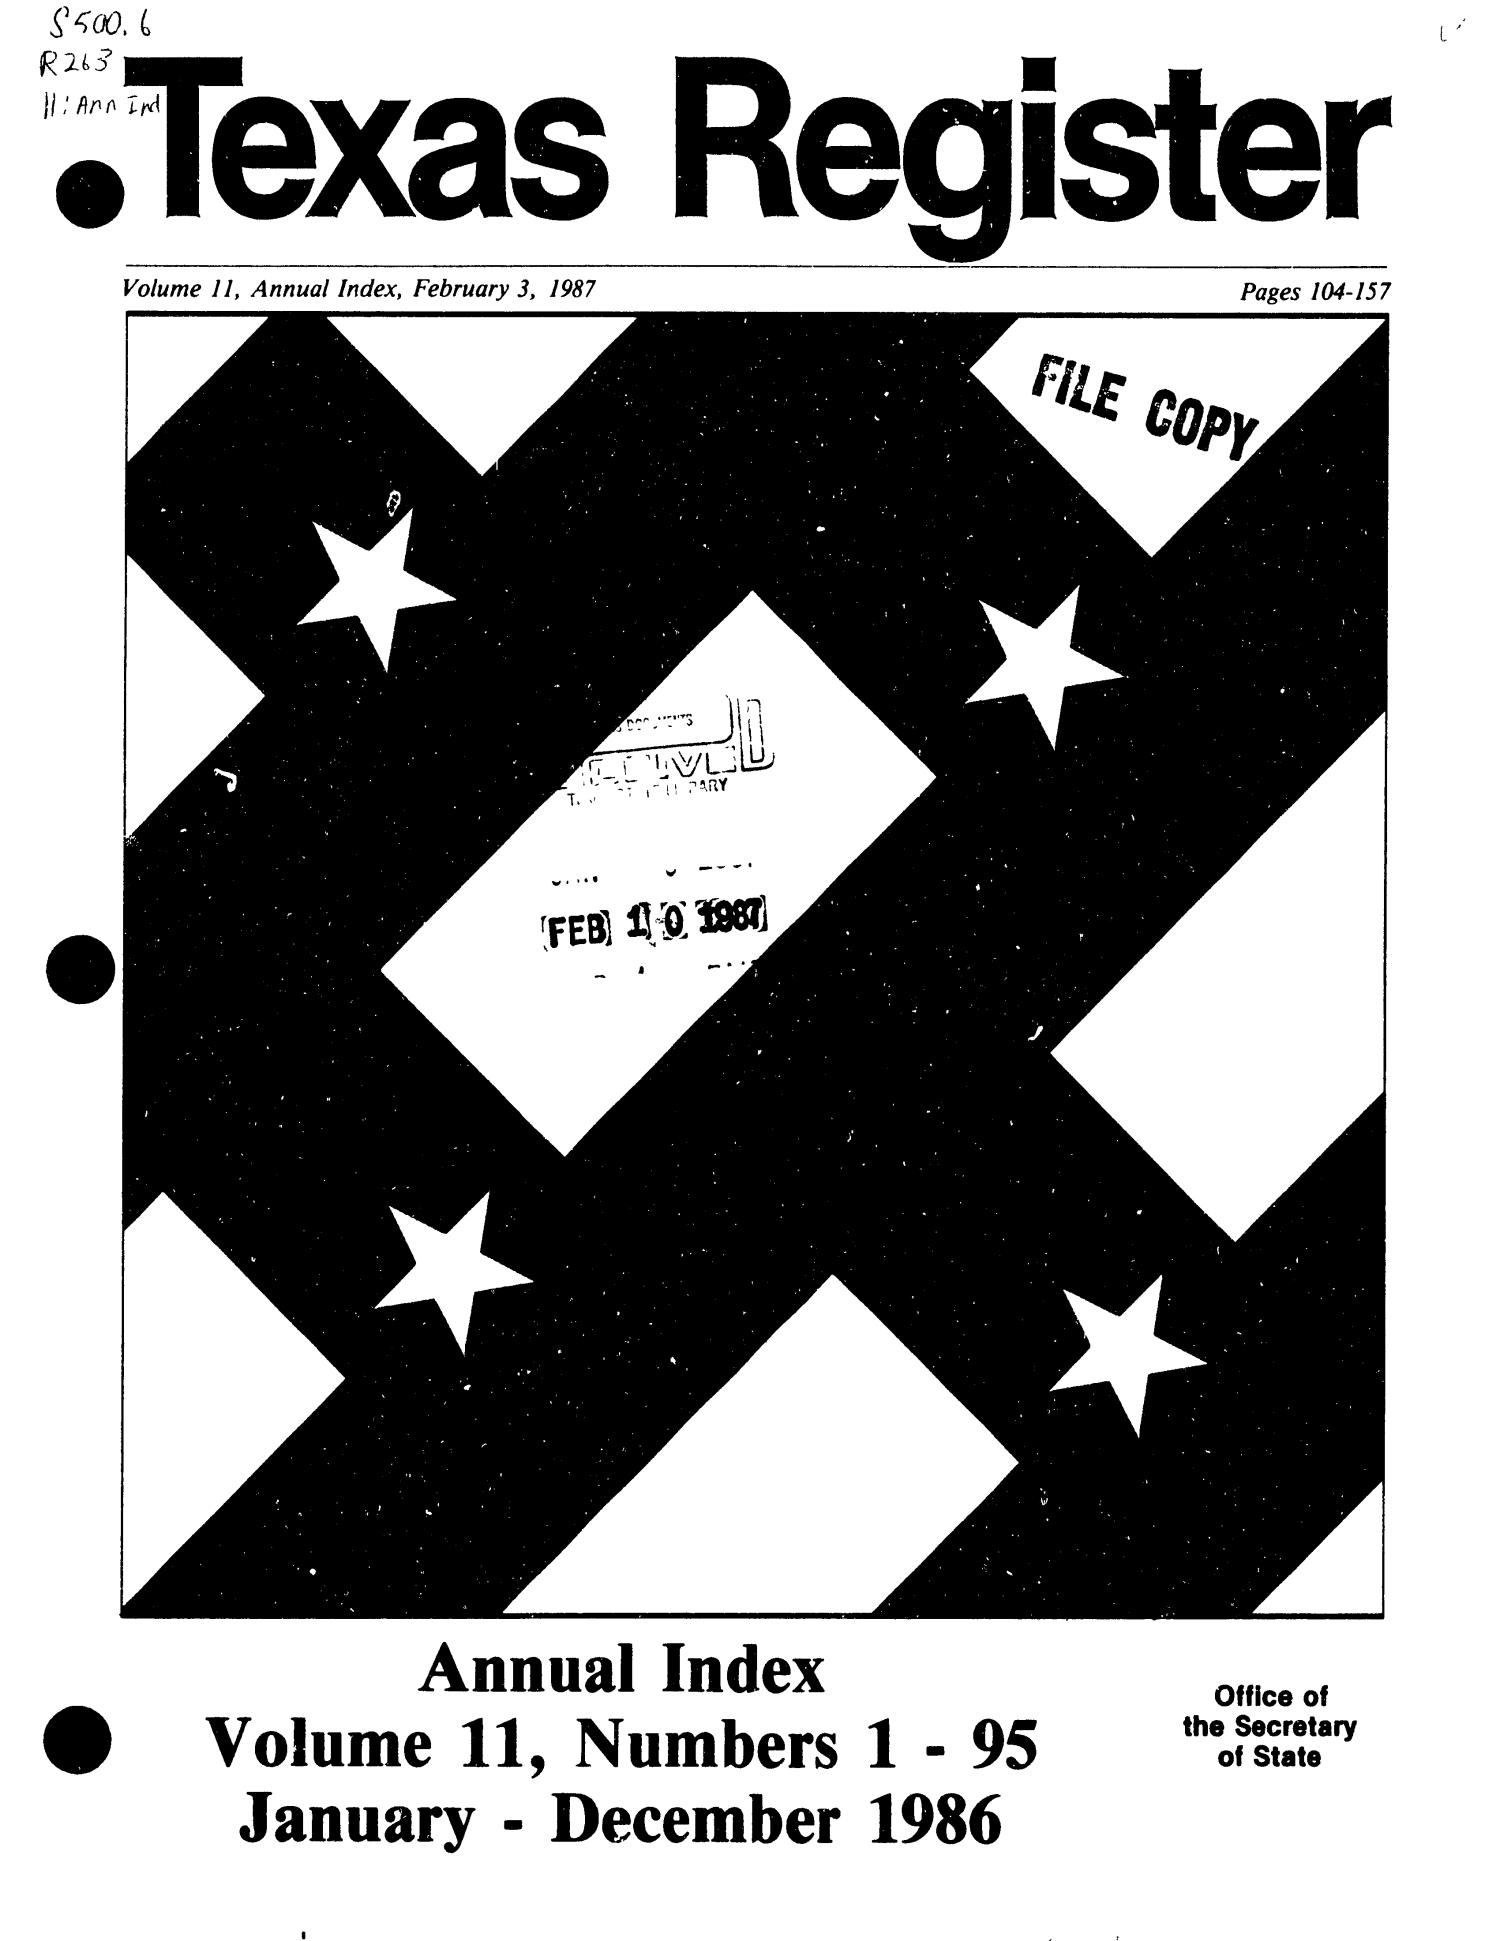 Texas Register: Annual Index January - December 1986, Volume 11 Numbers [1-96] - pages 104-157, February 3, 1987                                                                                                      Title Page